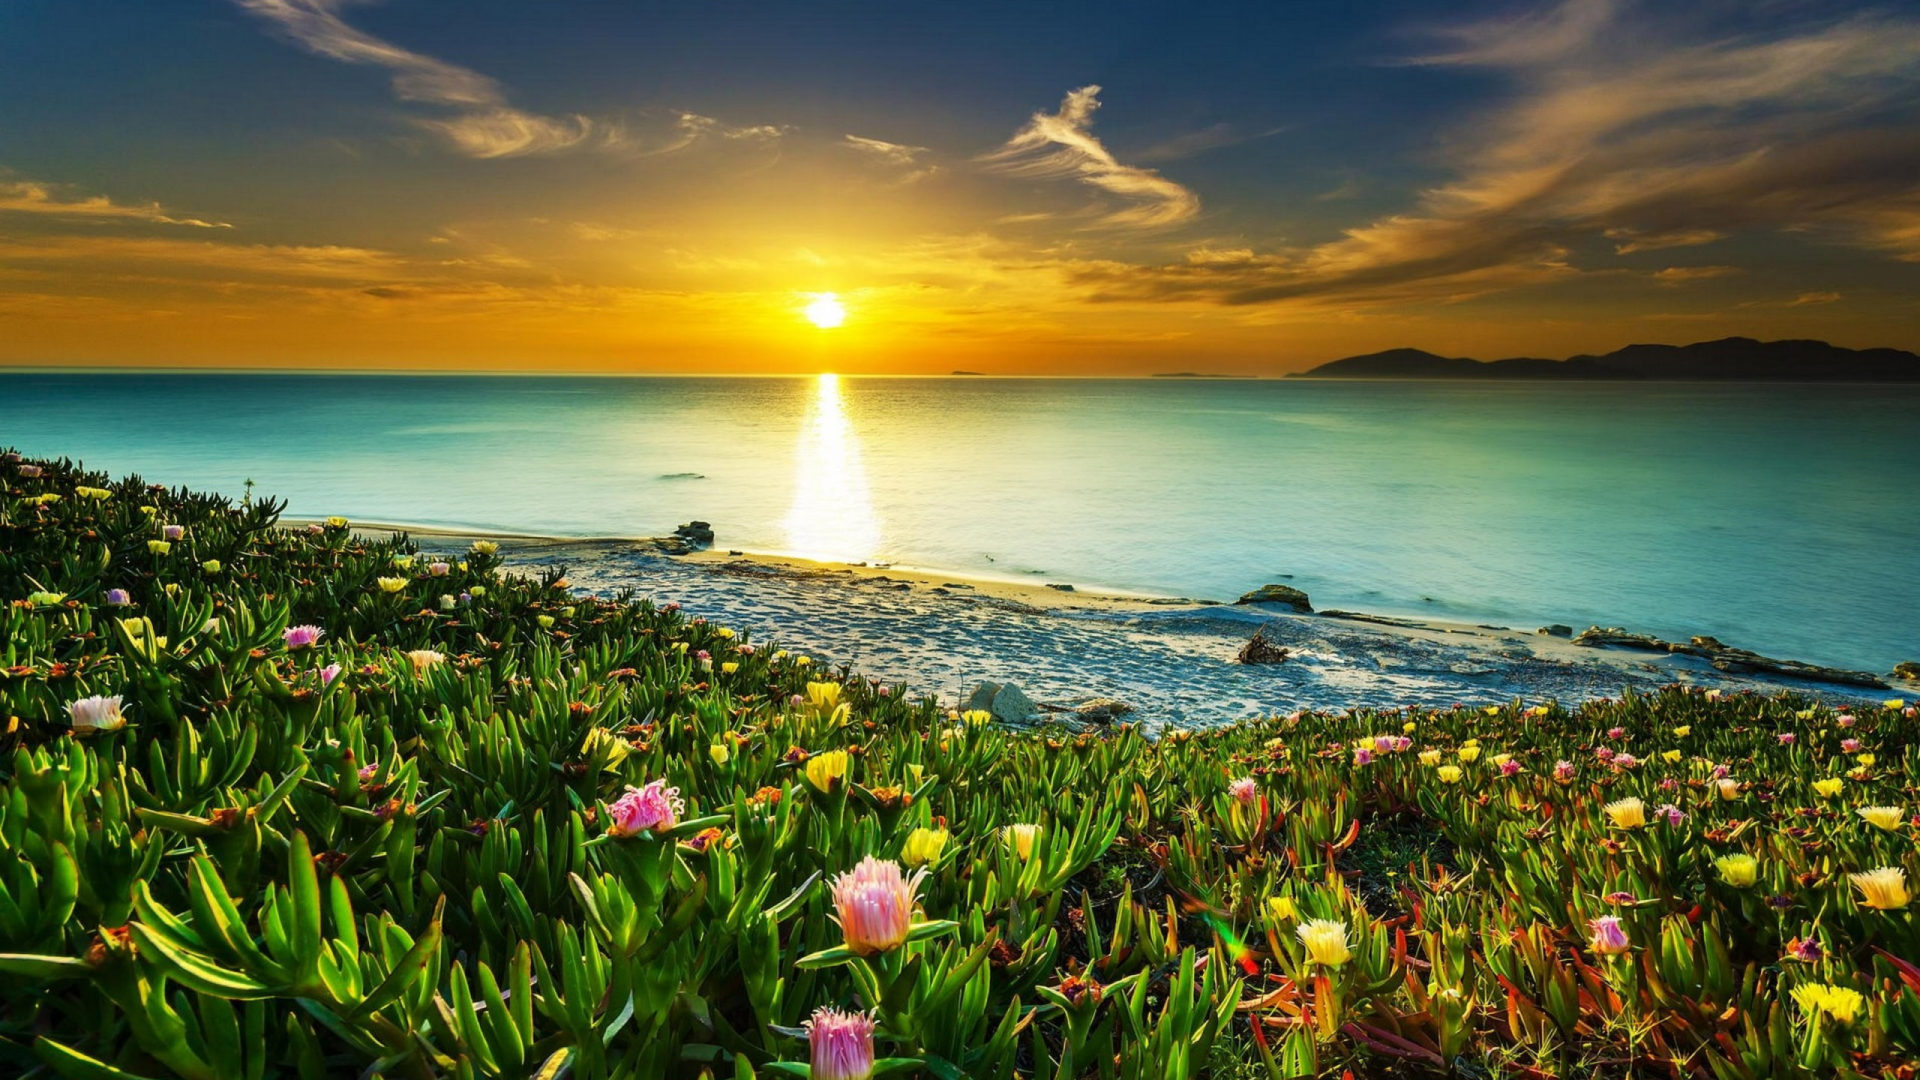 Fall Wallpapers For Tablet Sea Coast Meadow With Tropical Flowers Sandy Beach Calm